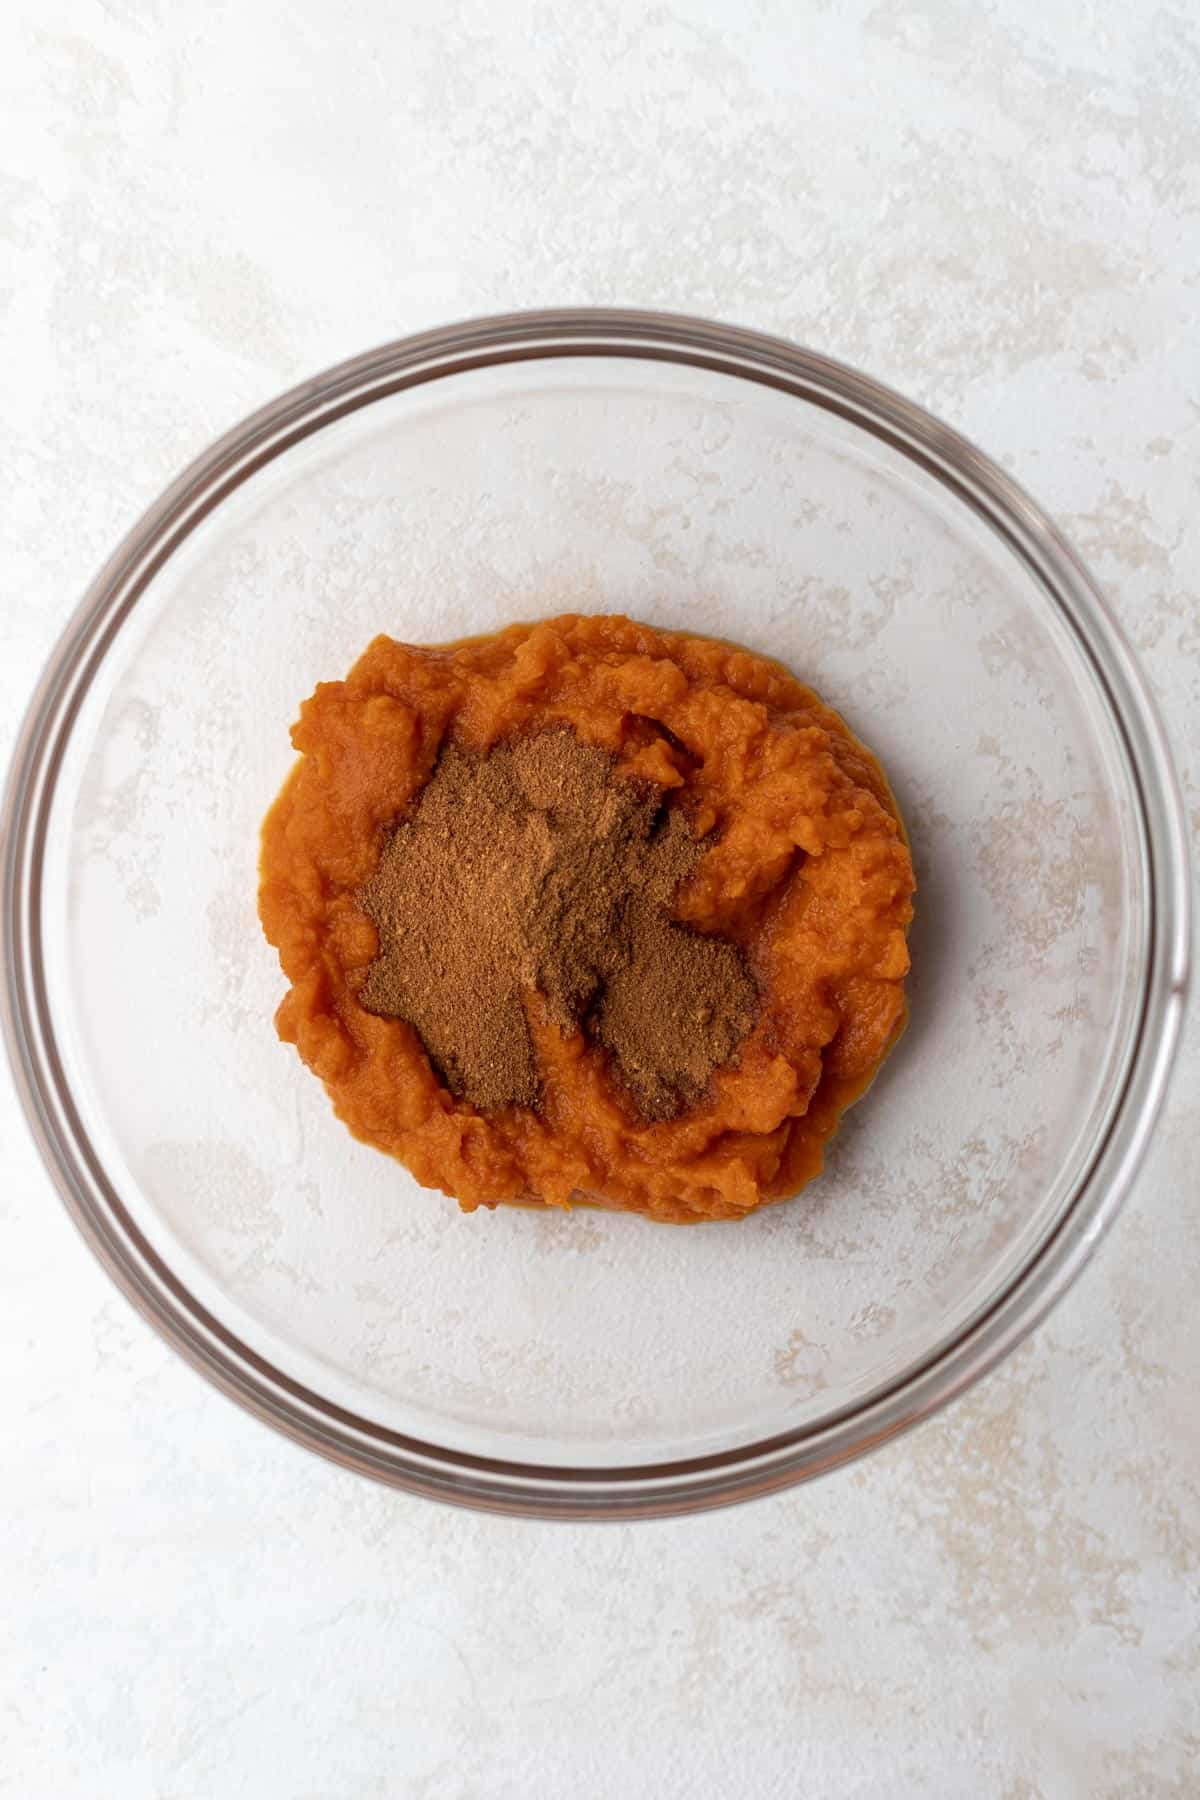 Pumpkin puree mixed with spices in a glass bowl.